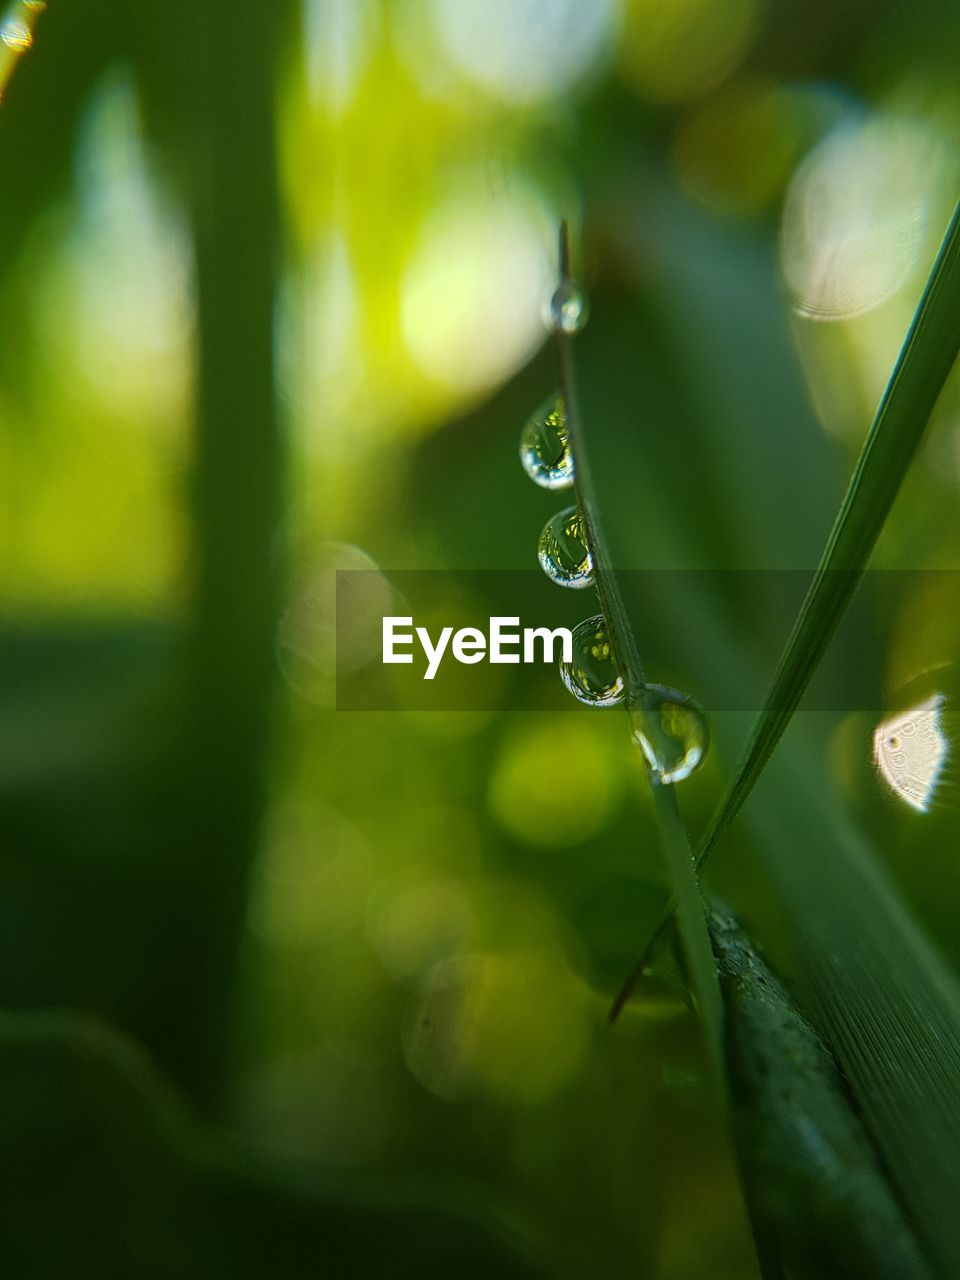 drop, green color, plant, water, wet, growth, beauty in nature, close-up, plant part, leaf, freshness, nature, selective focus, fragility, vulnerability, no people, focus on foreground, day, purity, rain, dew, raindrop, blade of grass, outdoors, rainy season